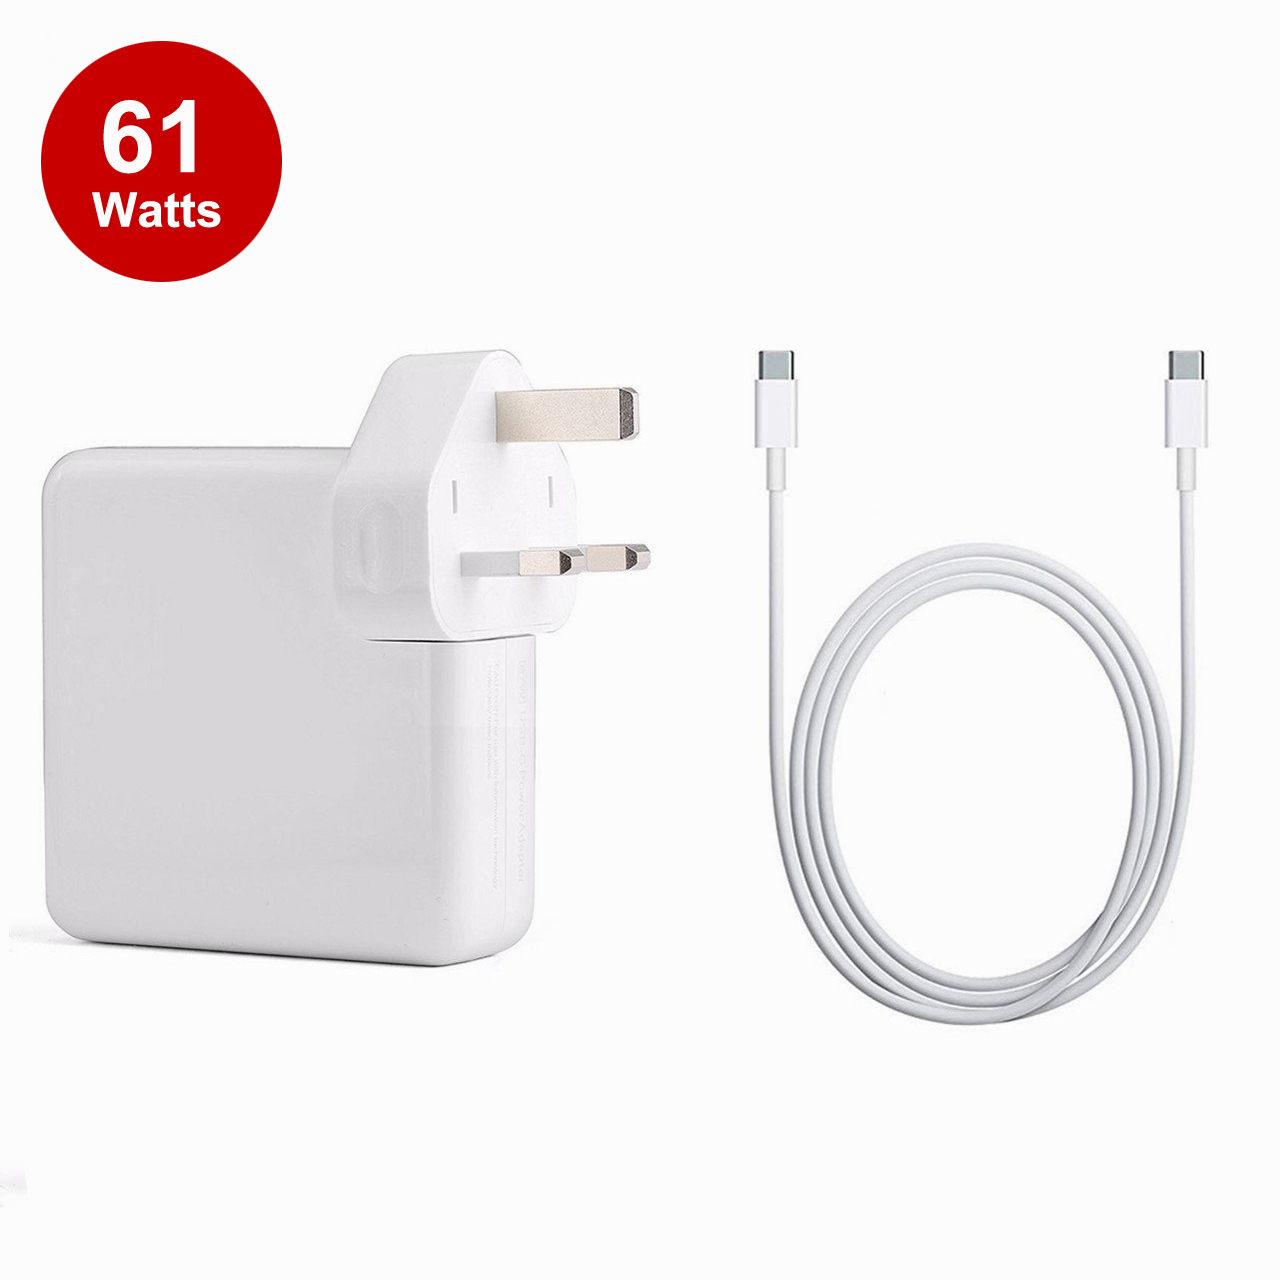 61W USB-C Power Adapter Charger for MacBook Pro 13 inch UK Plug